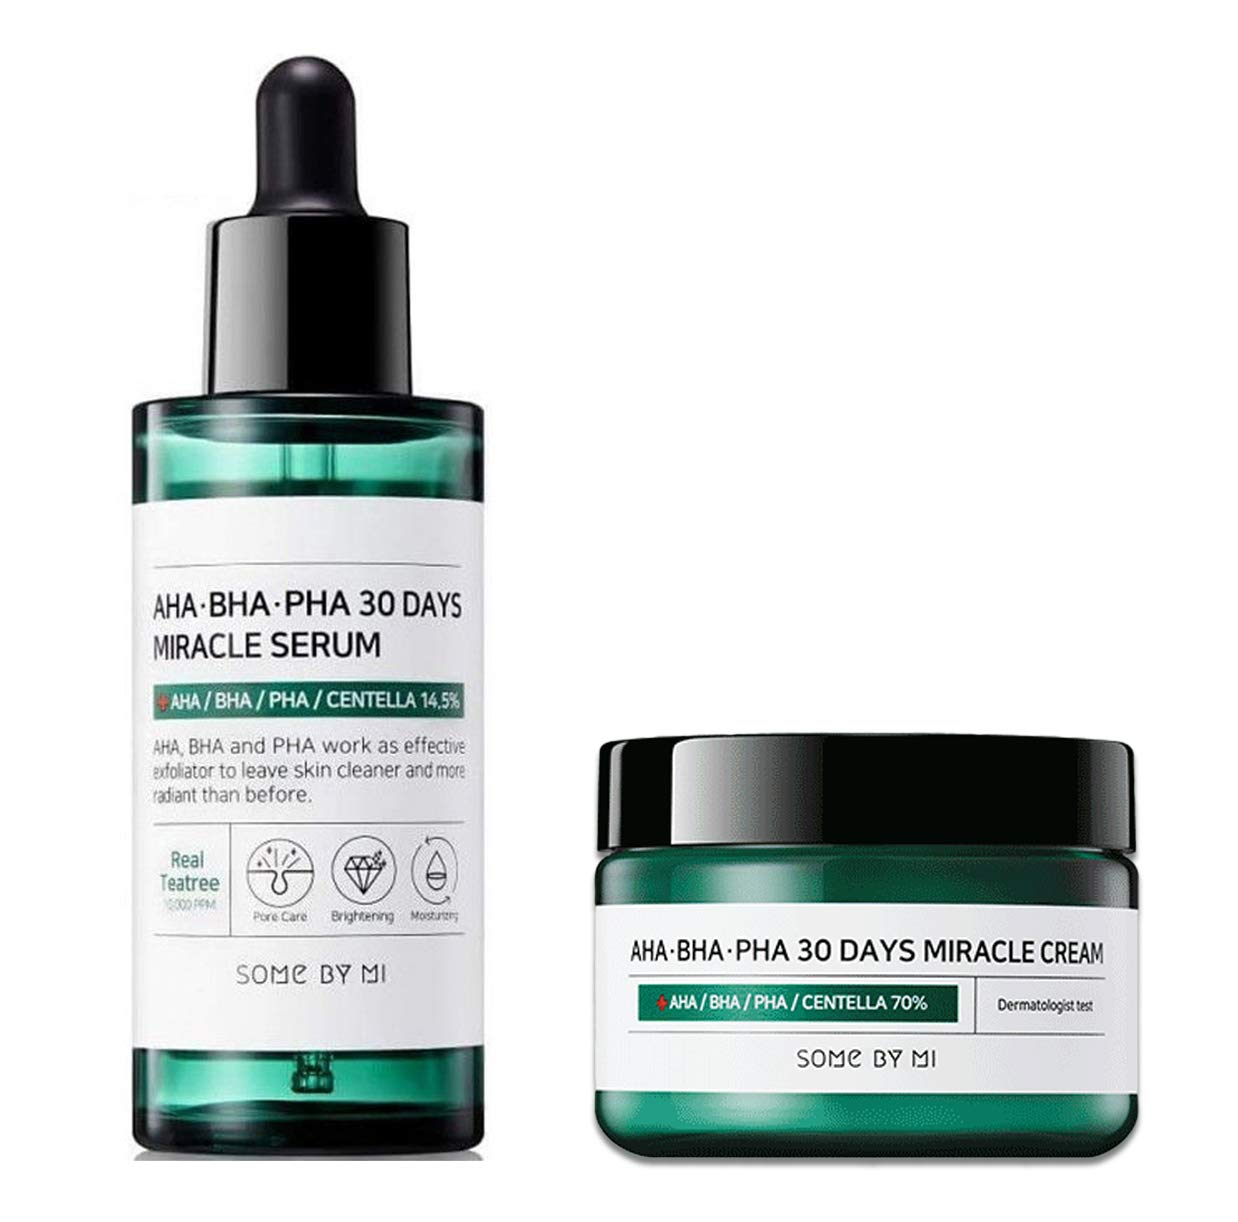 Somebymi AHA BHA PHA Miracle Serum (1.7 oz / 50ml) + Cream (1.7 oz / 50ml) Skin Barrier & Recovery, Soothing with Tea Tree 10,000ppm for Wrinkle & Whitening Care (Last of AHA BHA PHA Miracle Series)